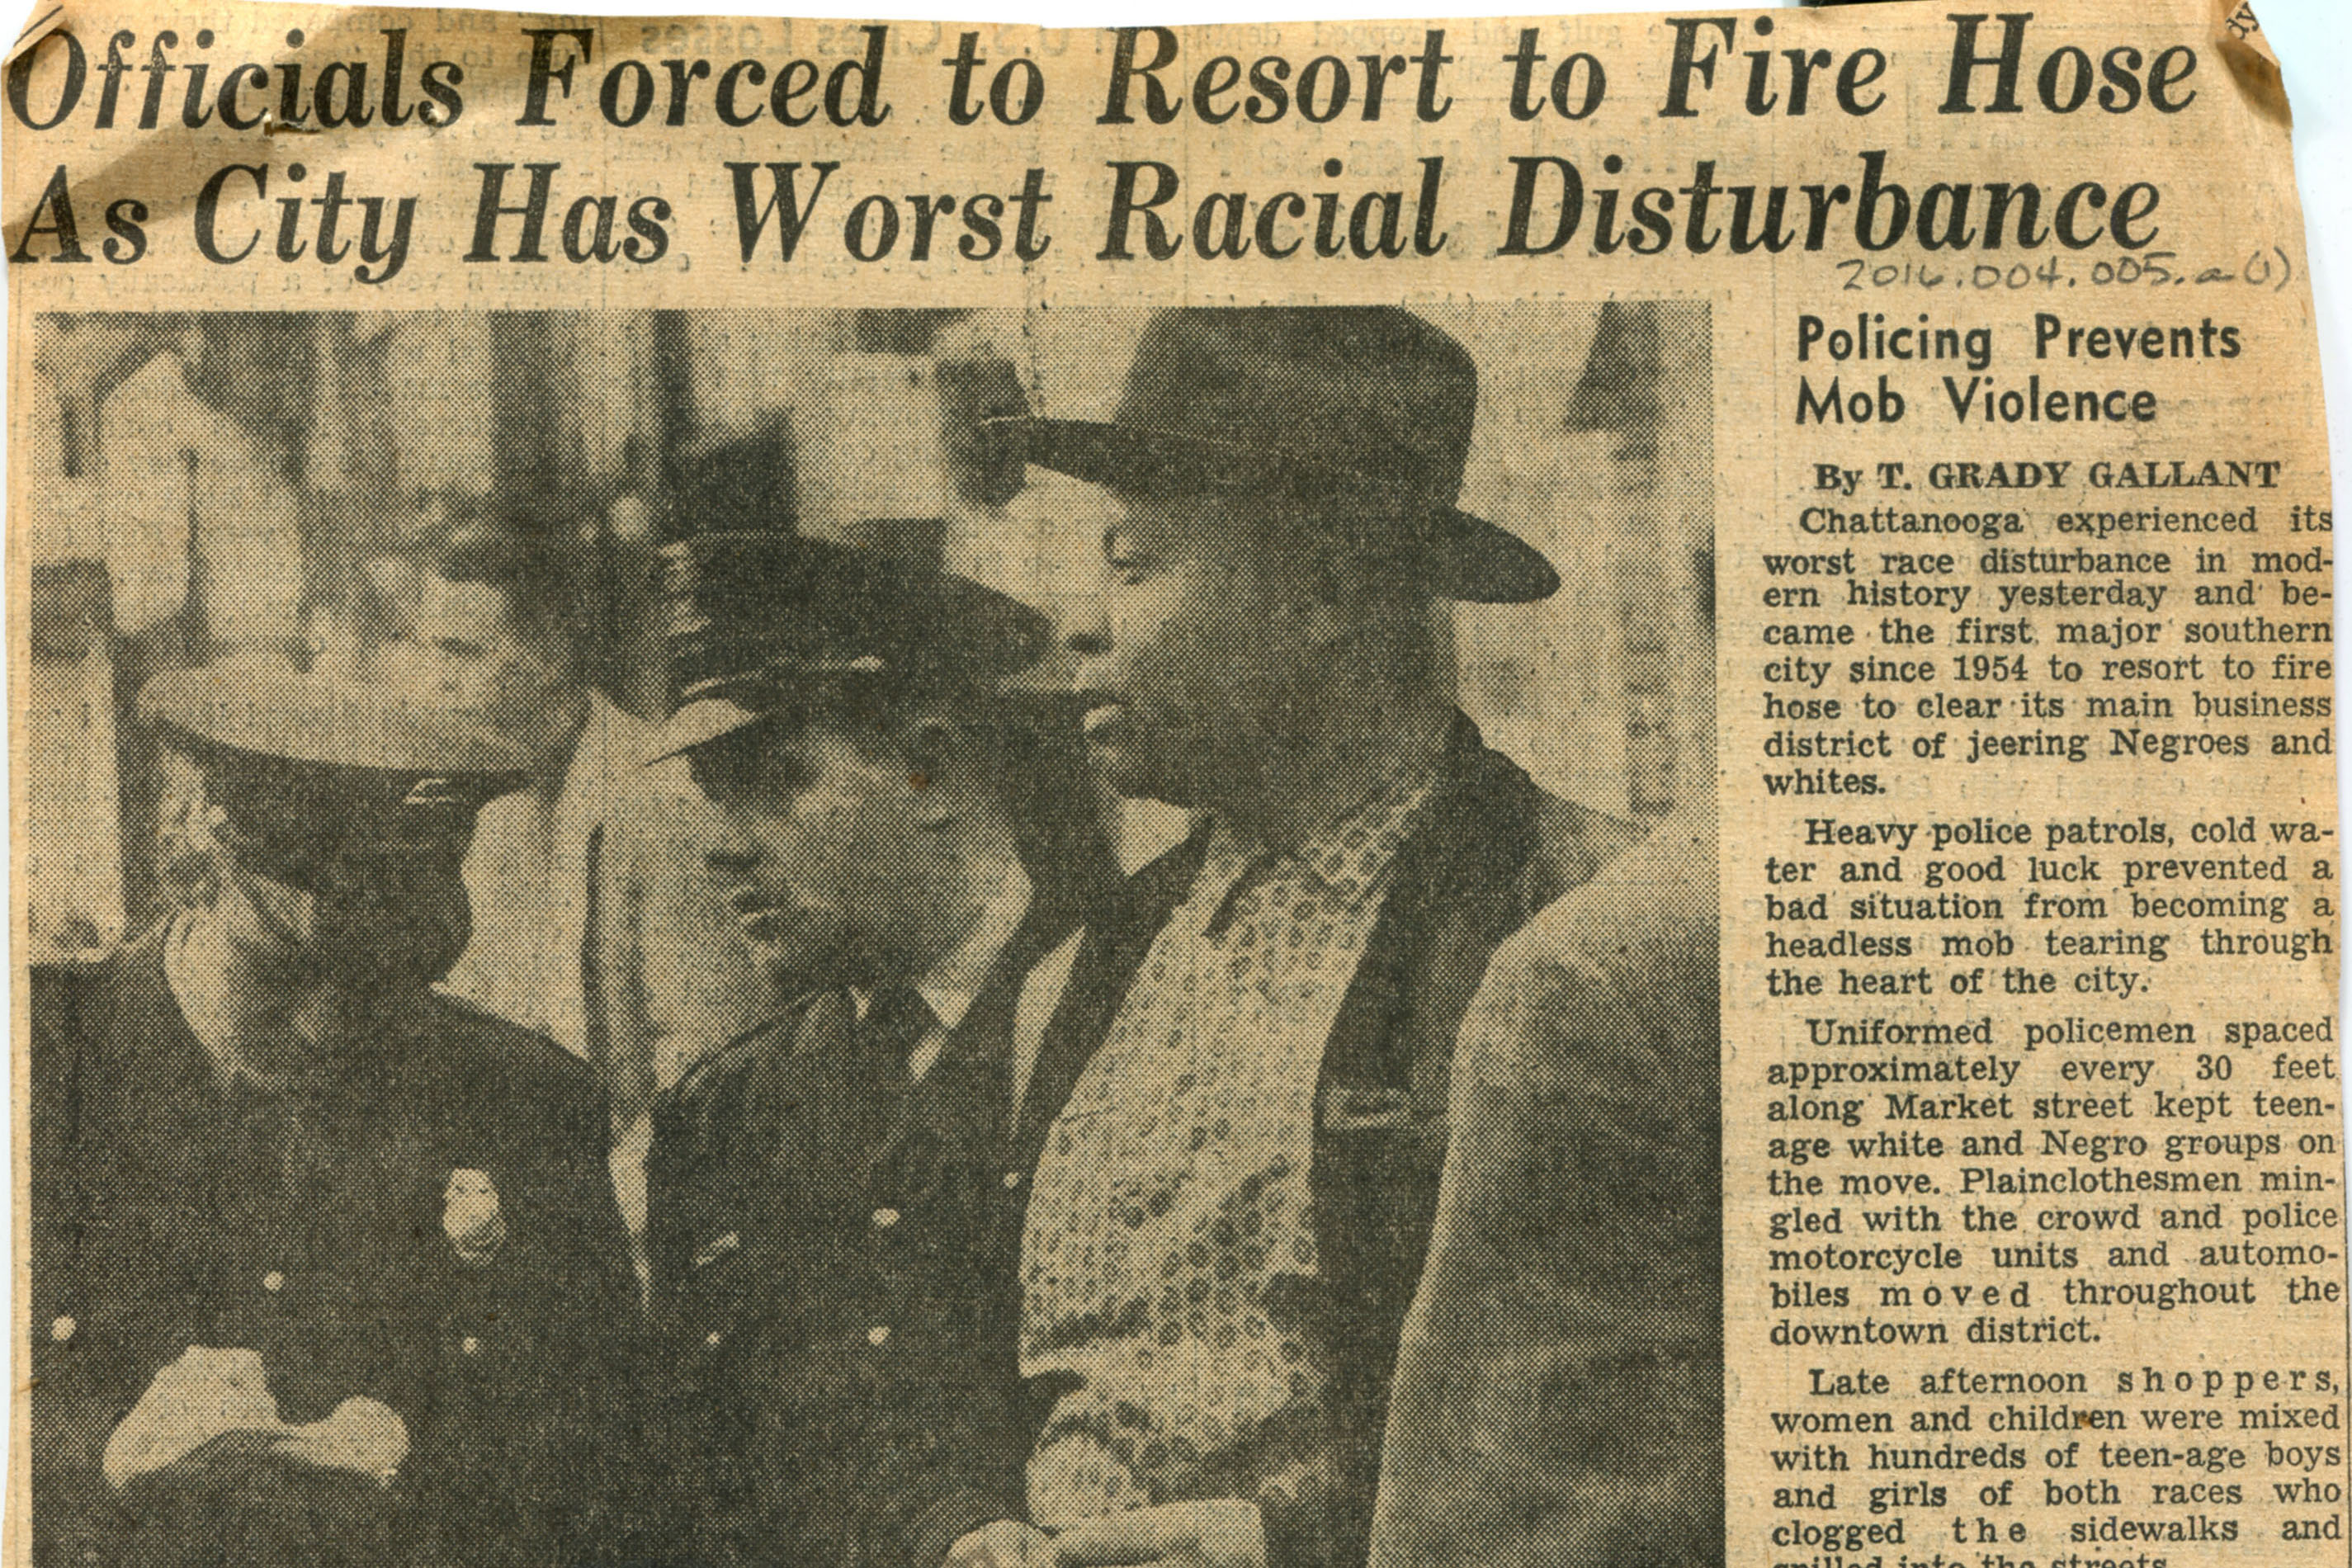 'Officials Forced To Resort To Fire Hose As City Has Worst Racial Disturbance' newspaper clipping, 1960 February 25, by the Chattanooga News-Free Press. Courtesy of the Chattanooga Public Library and the University of Tennessee at Chattanooga Special Collections.